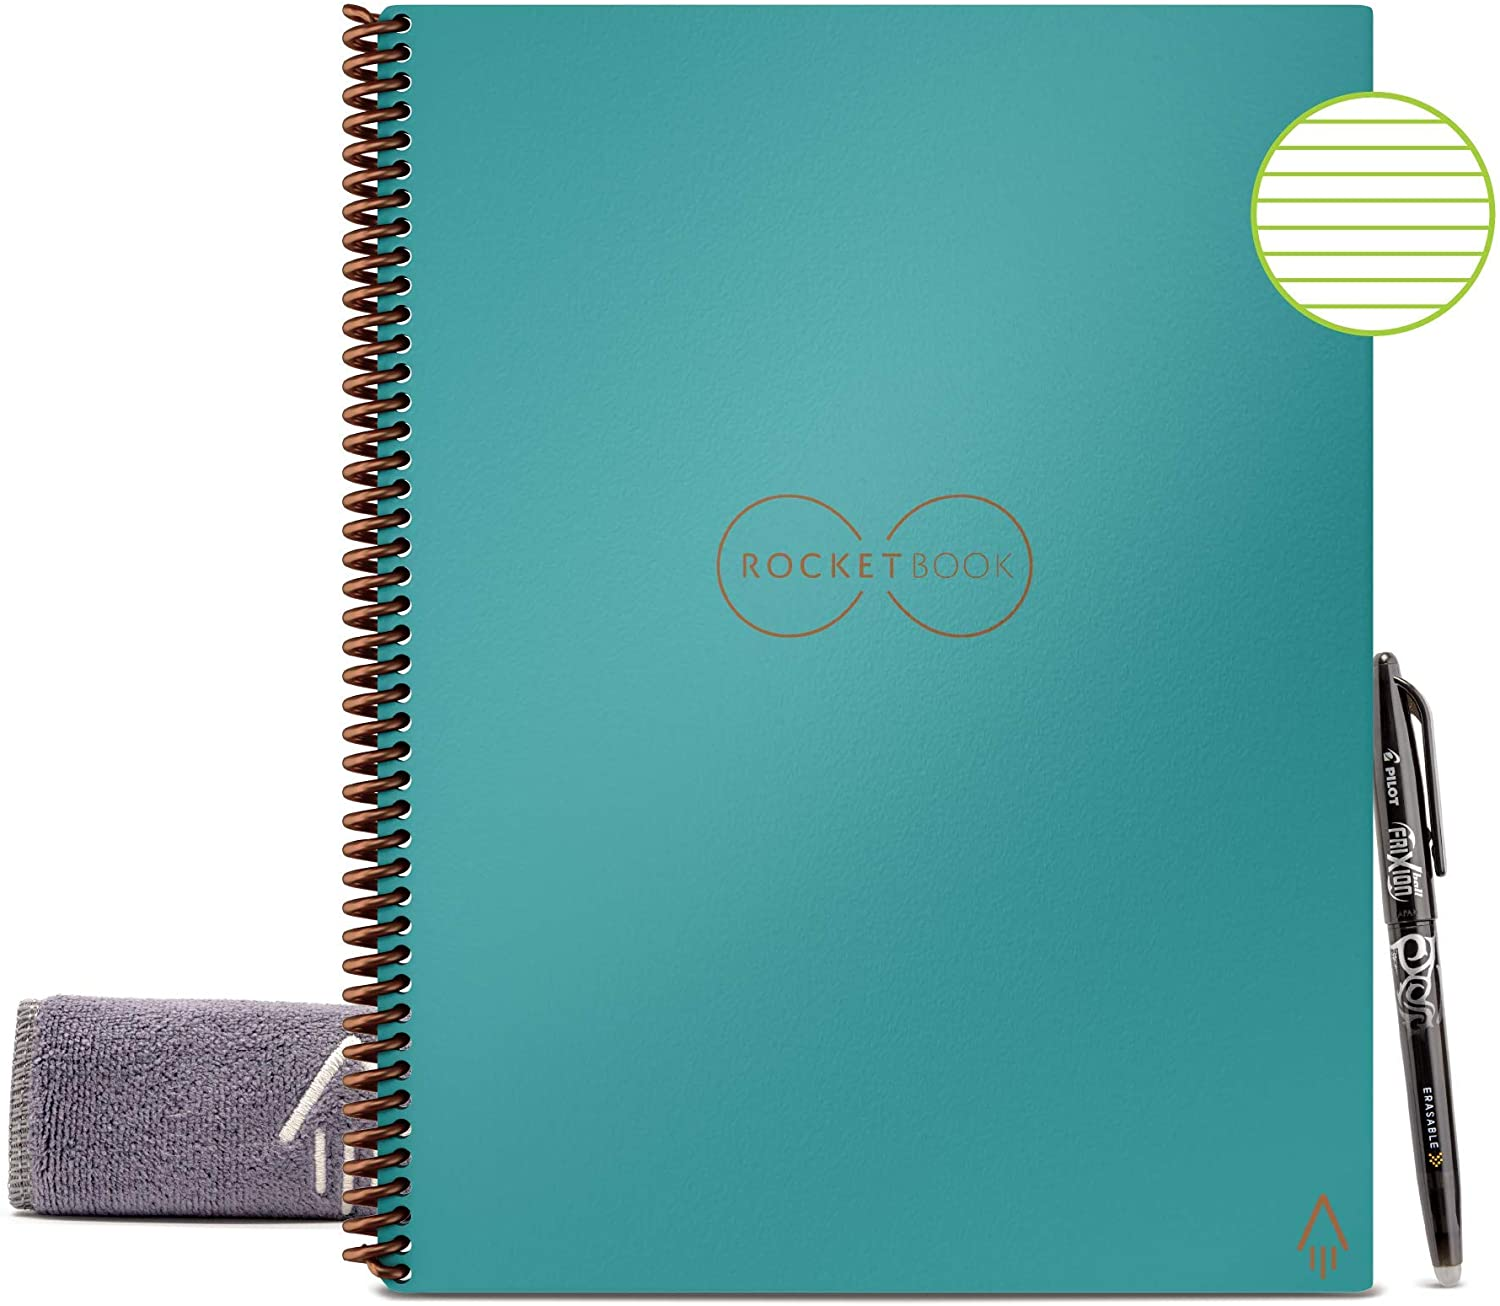 Rocketbook Brand Notebooks Infinite Erases